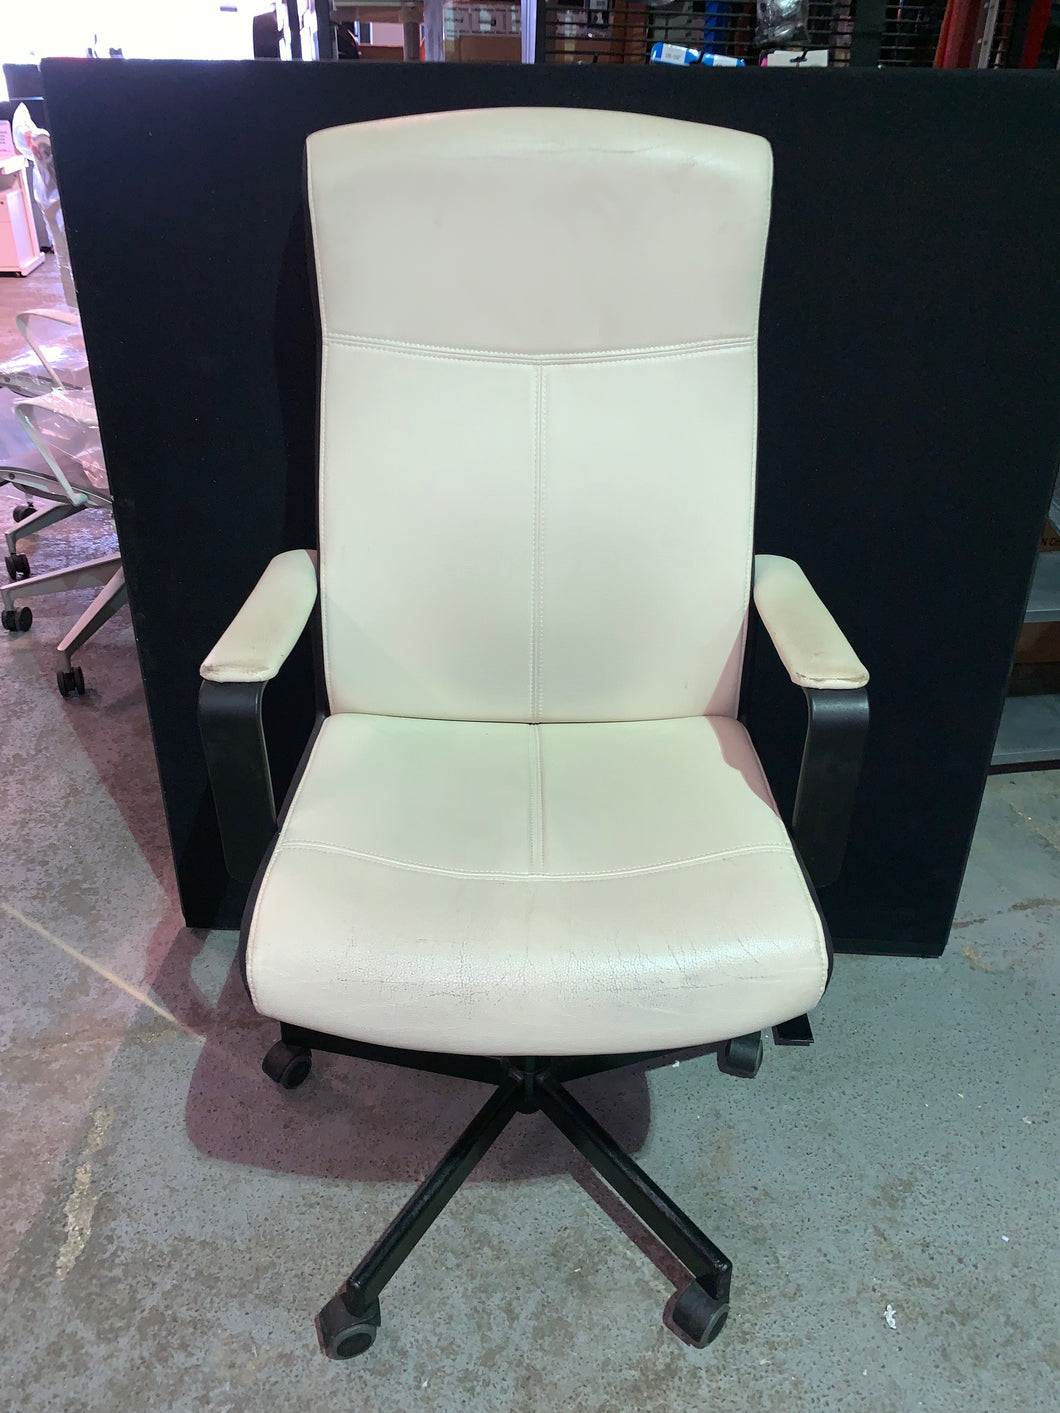 Cream Faux Leather Executive Chair - Flogit2us.com